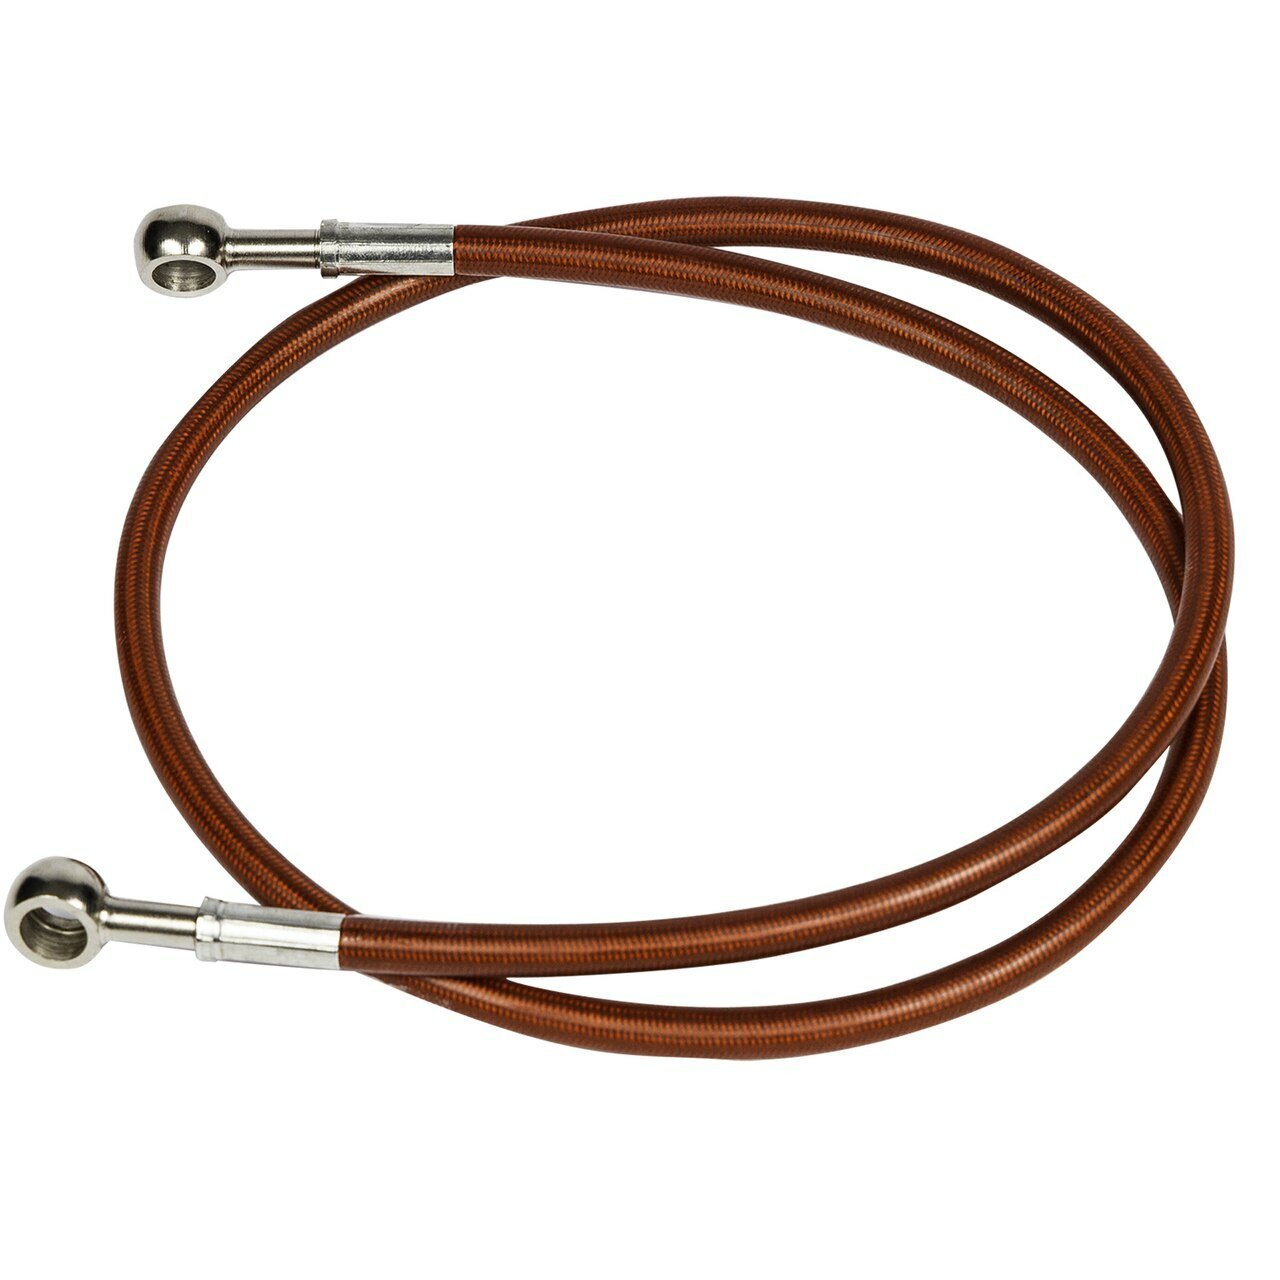 "Red 36"" Brake line for swingarm extensions"